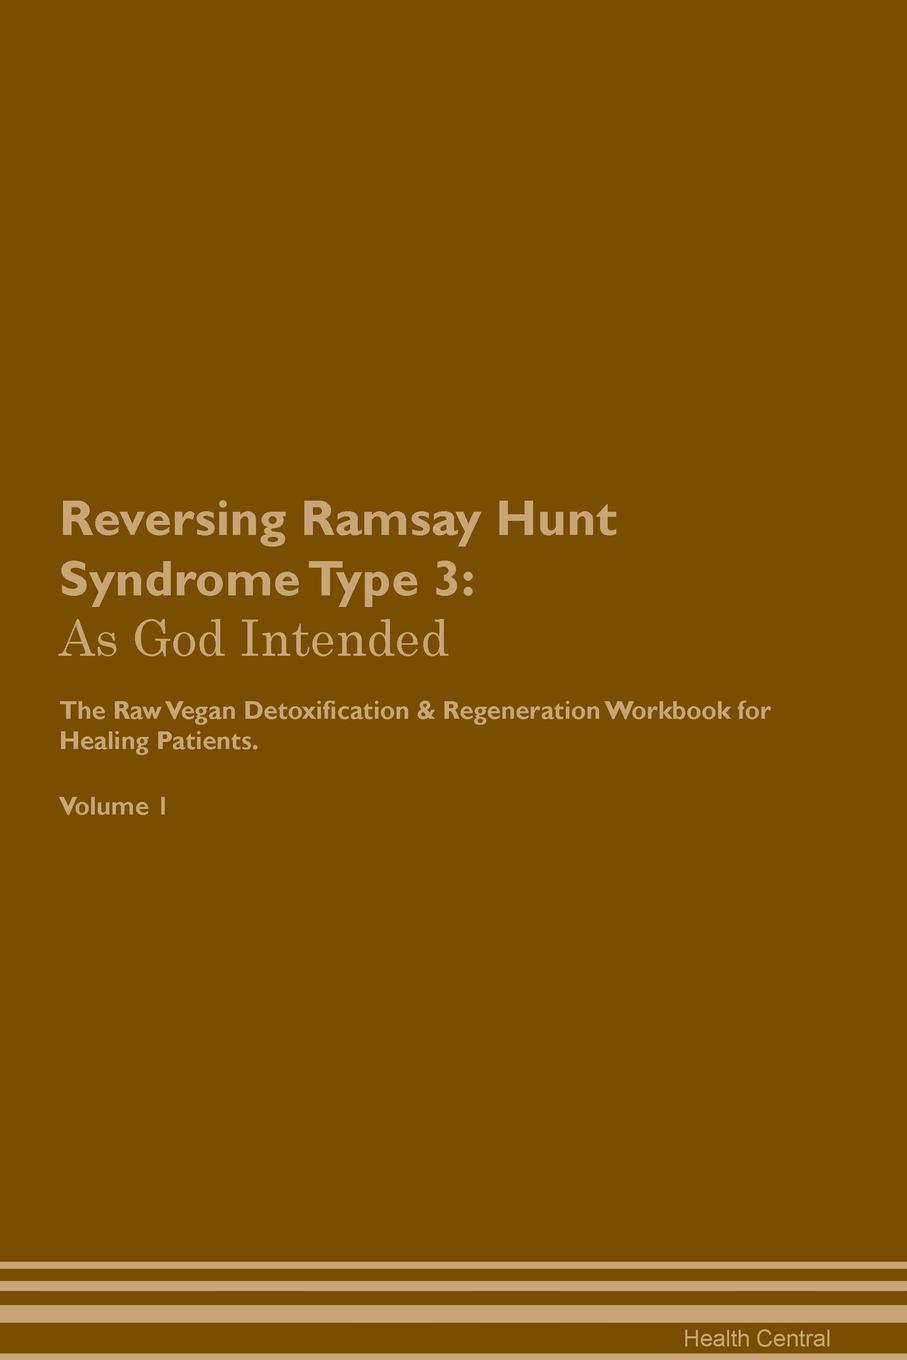 Reversing Ramsay Hunt Syndrome Type 3. As God Intended The Raw Vegan Plant-Based Detoxification & Regeneration Workbook for Healing Patients. Volume 1